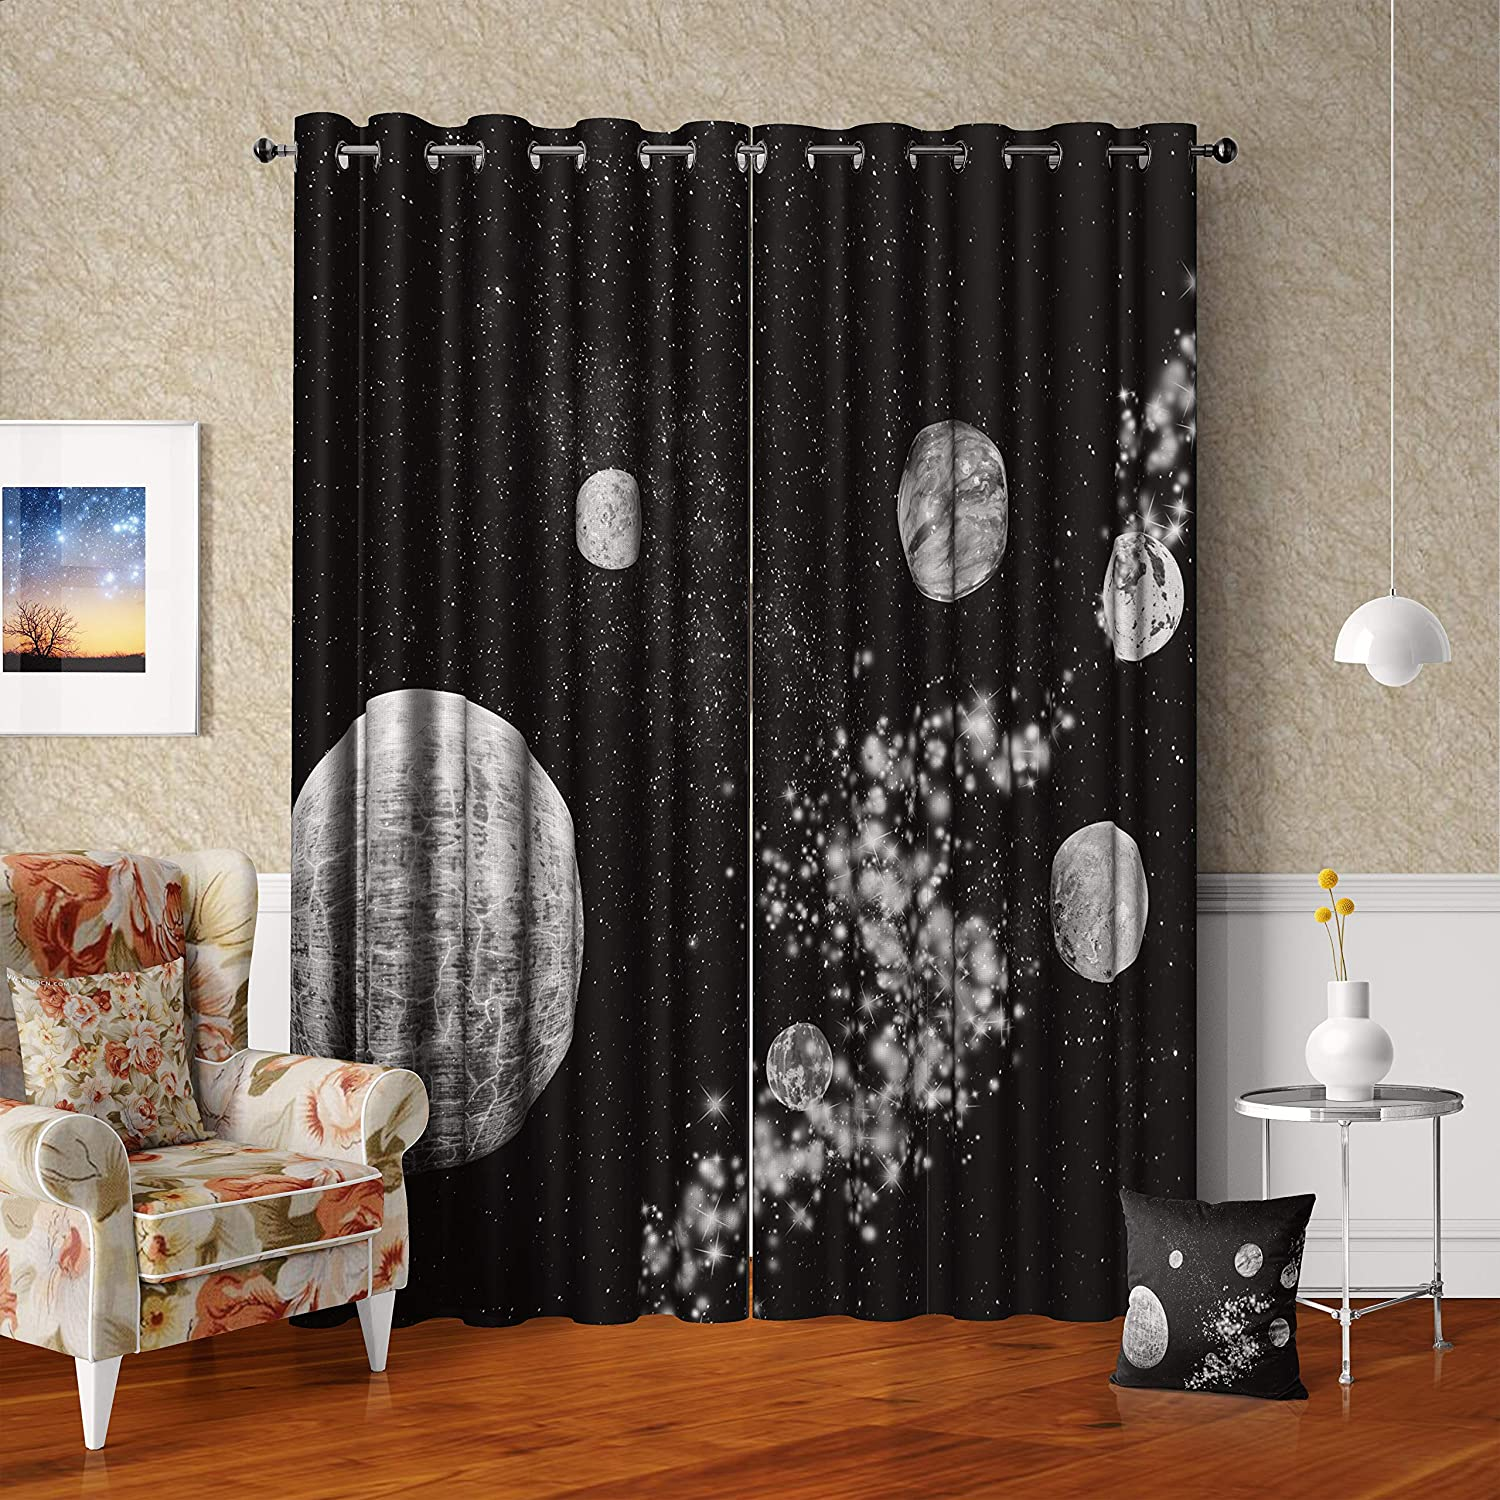 excellence AXLuolan Psychedelic Starry Sky Galaxy Outer Curtai Space 2021 new Nebula